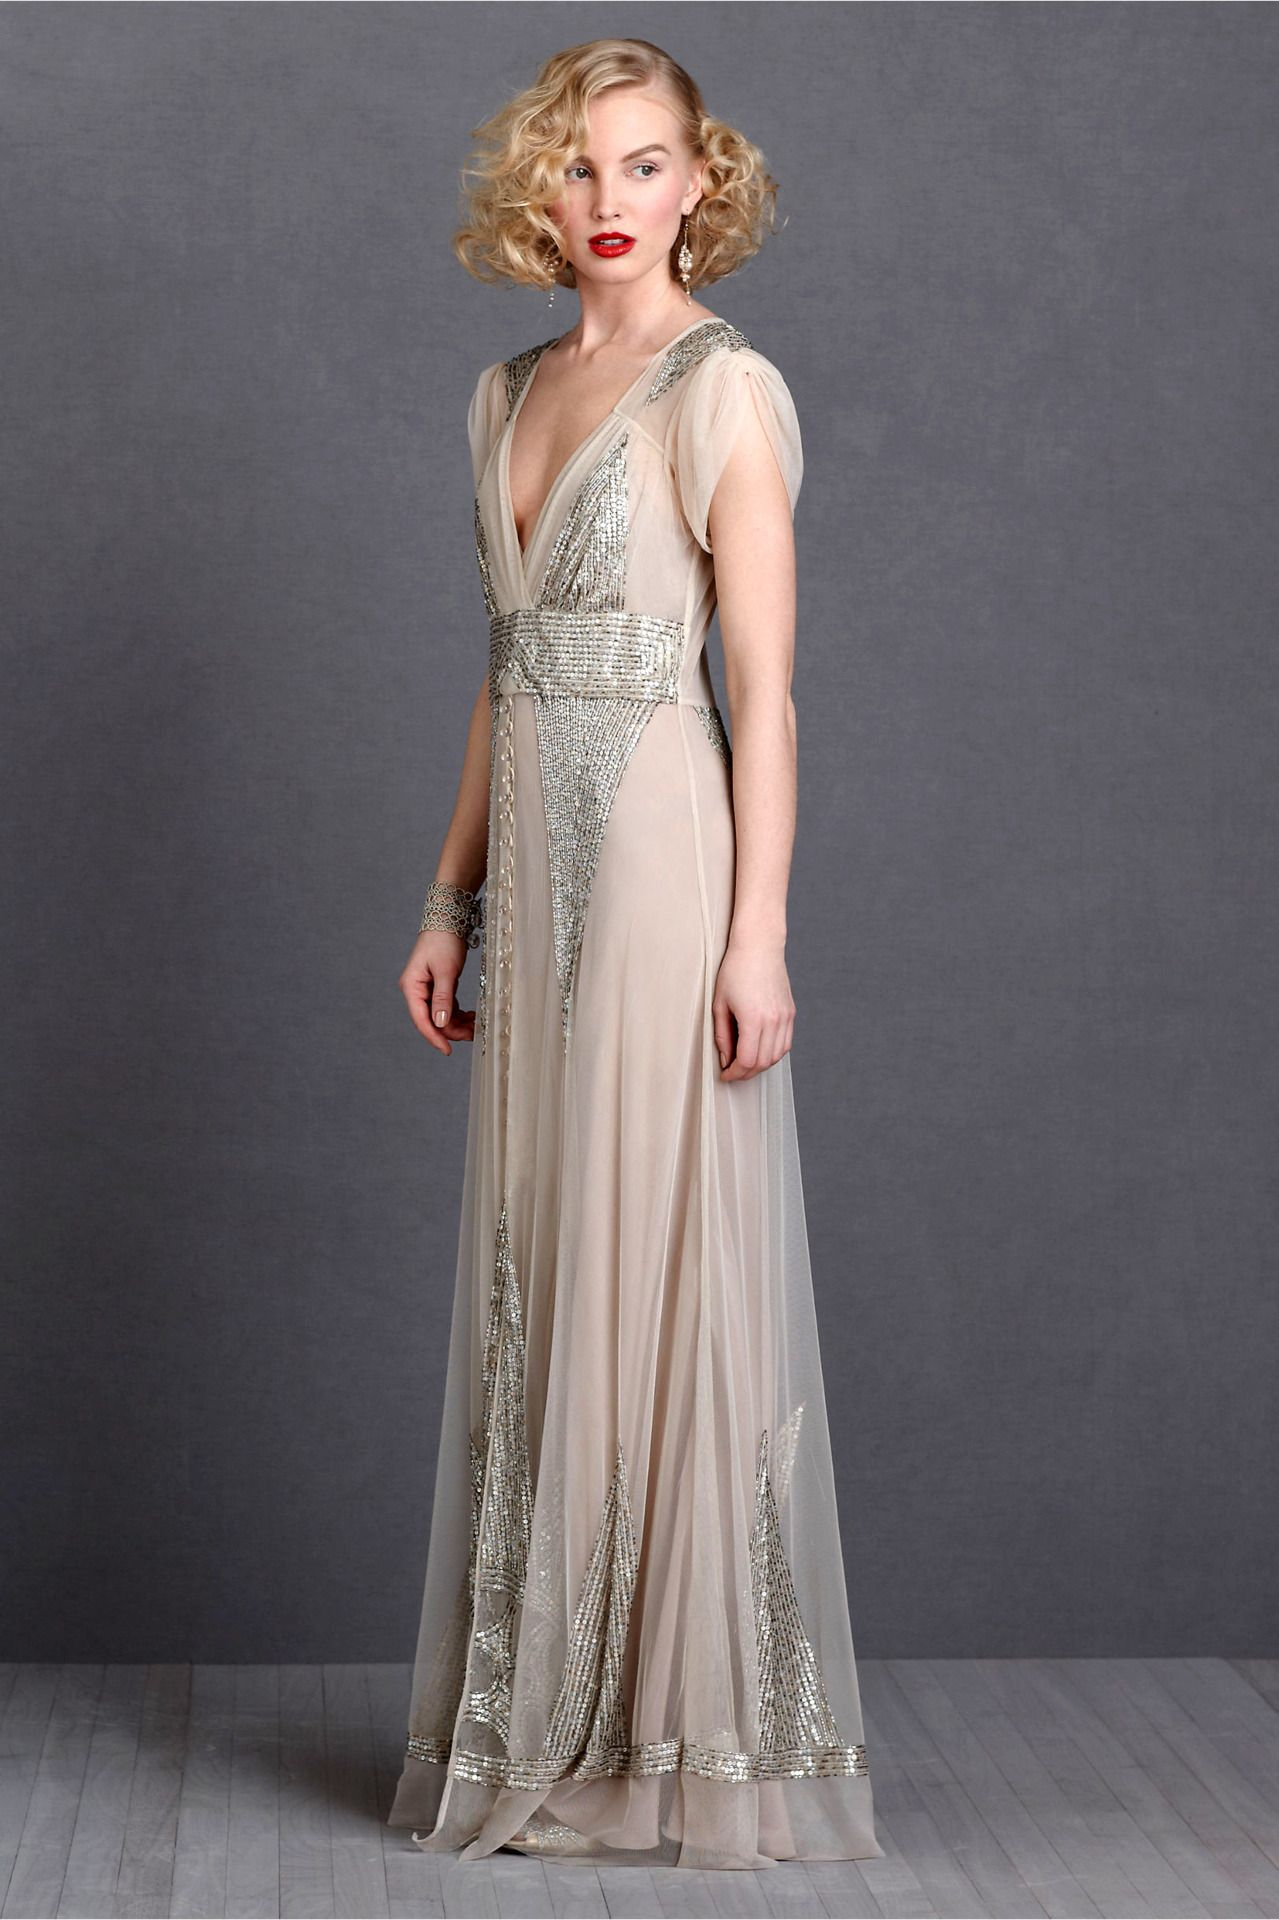 aiguille gown by BHLDN | Wedding | Pinterest | Gowns, Art deco and ...